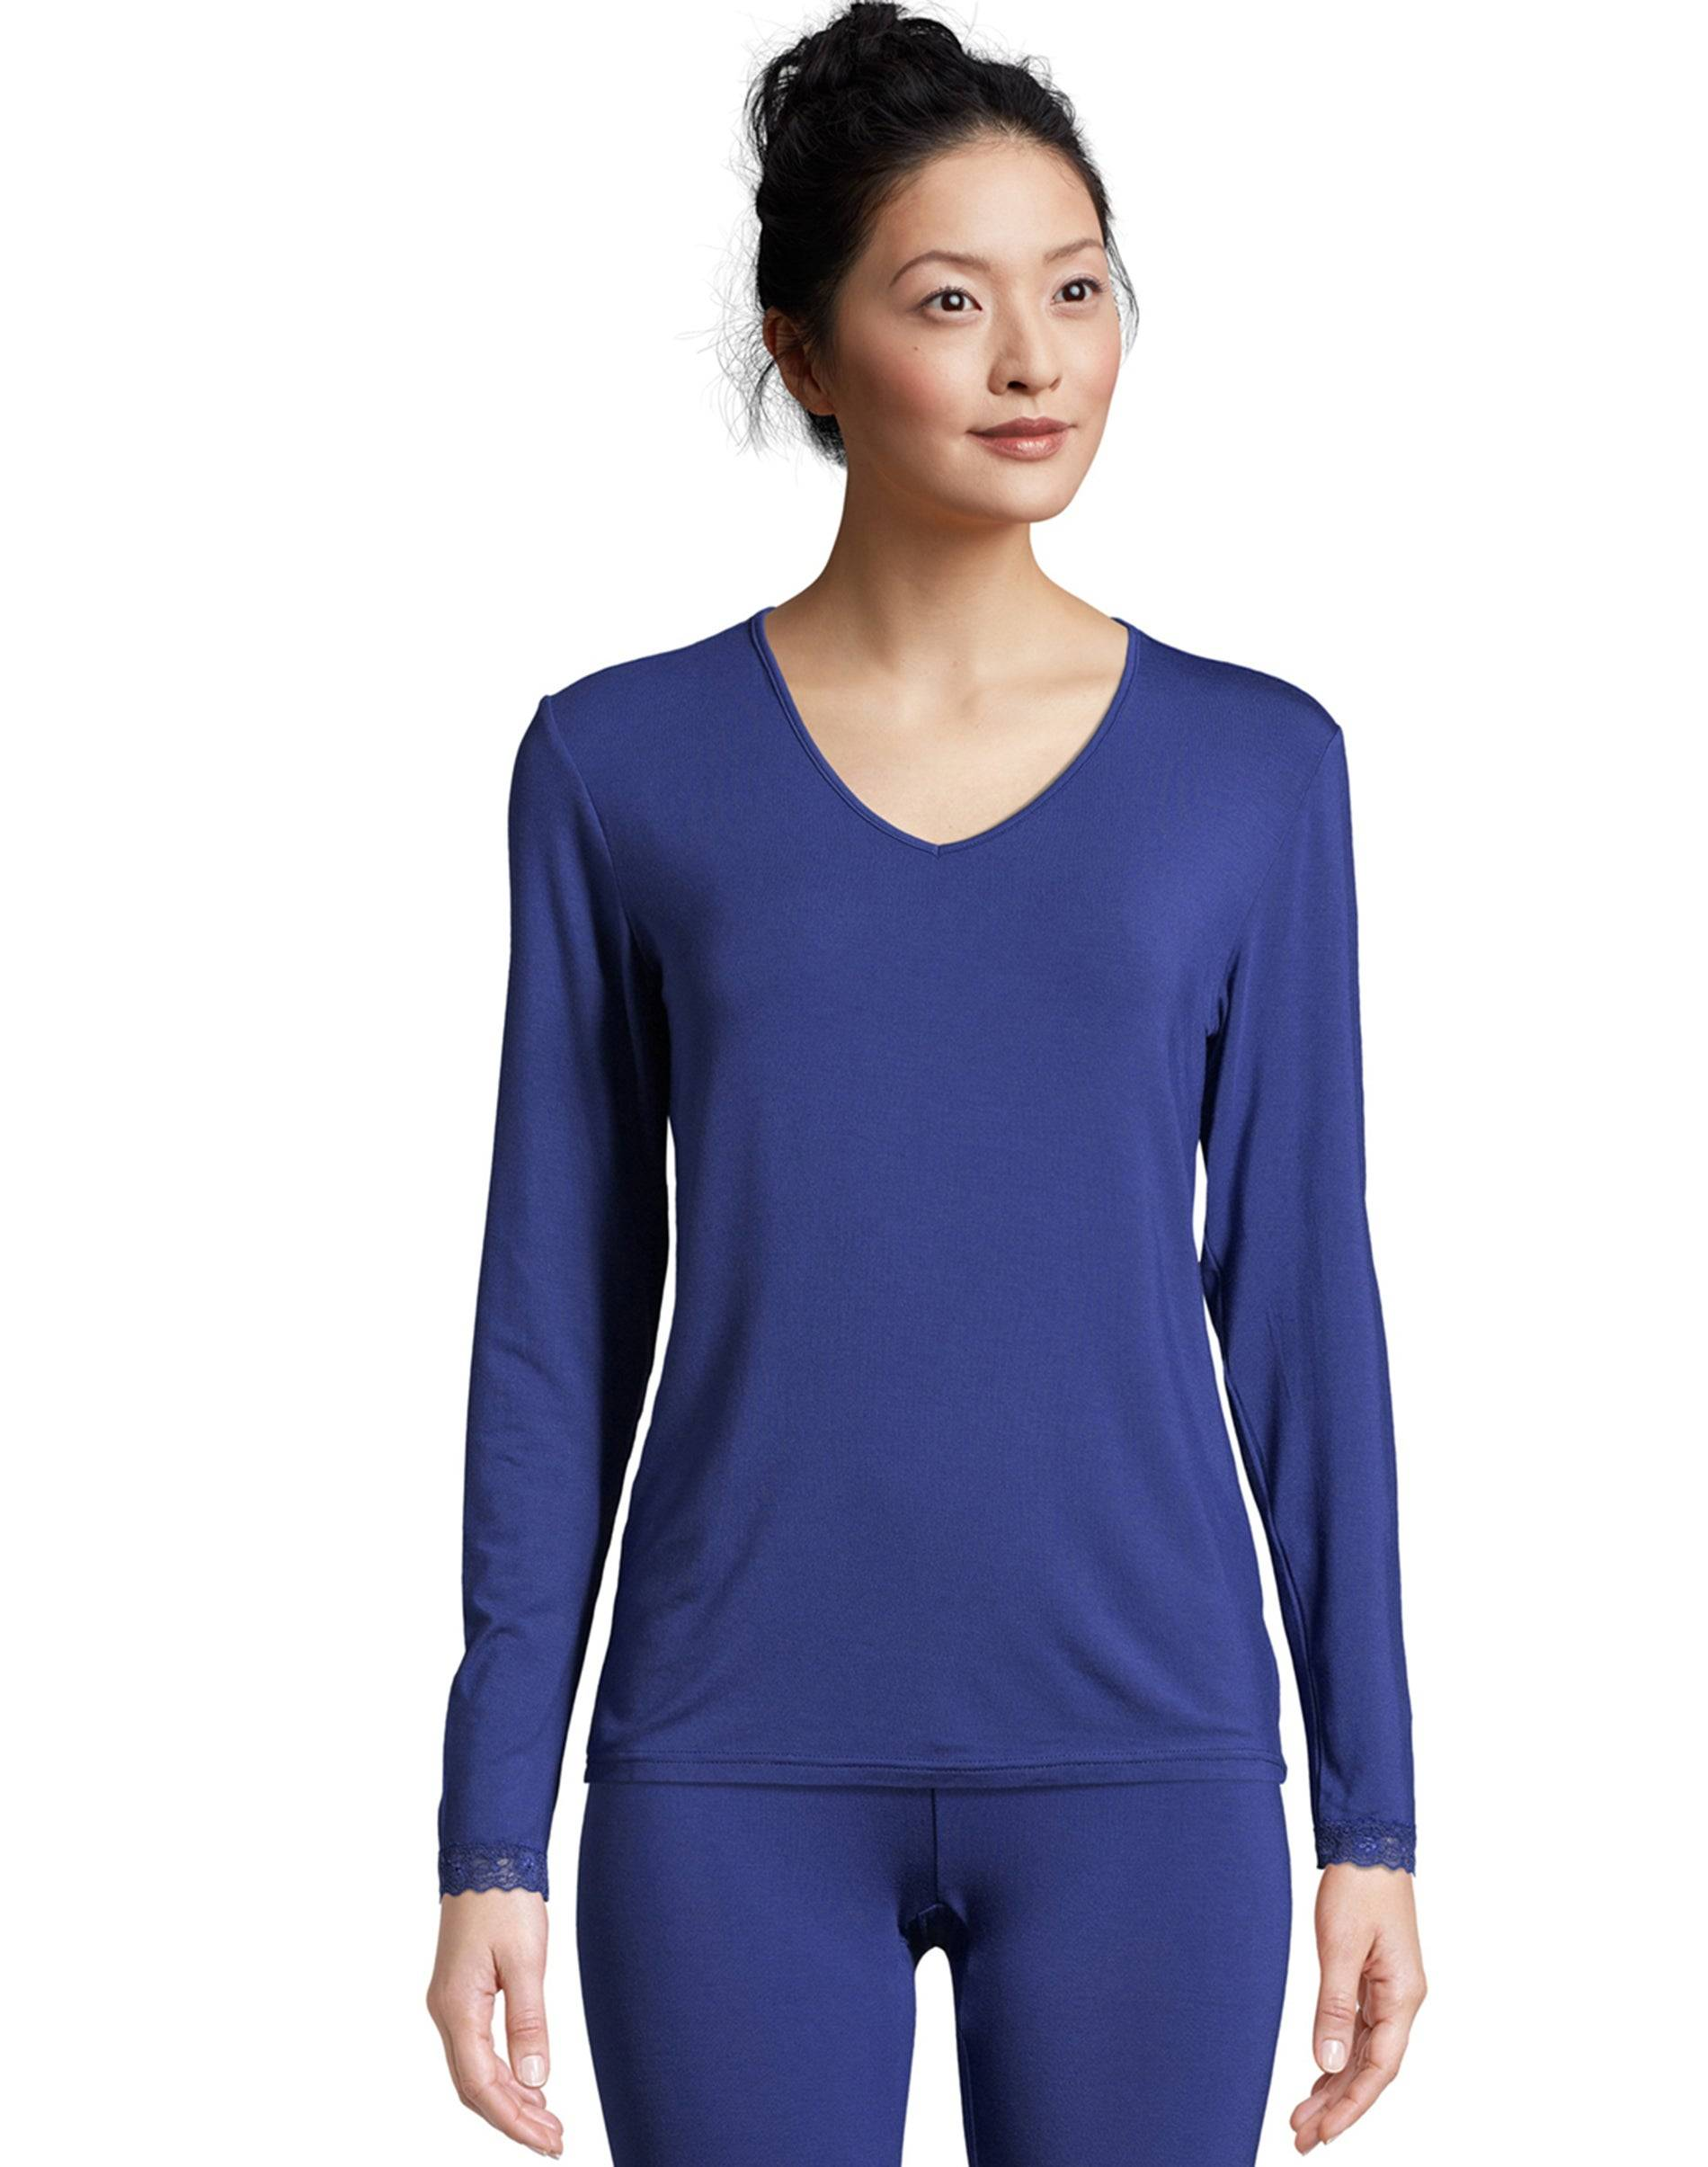 Hanes Women's Comfort Collection Thermal Top Blue XL